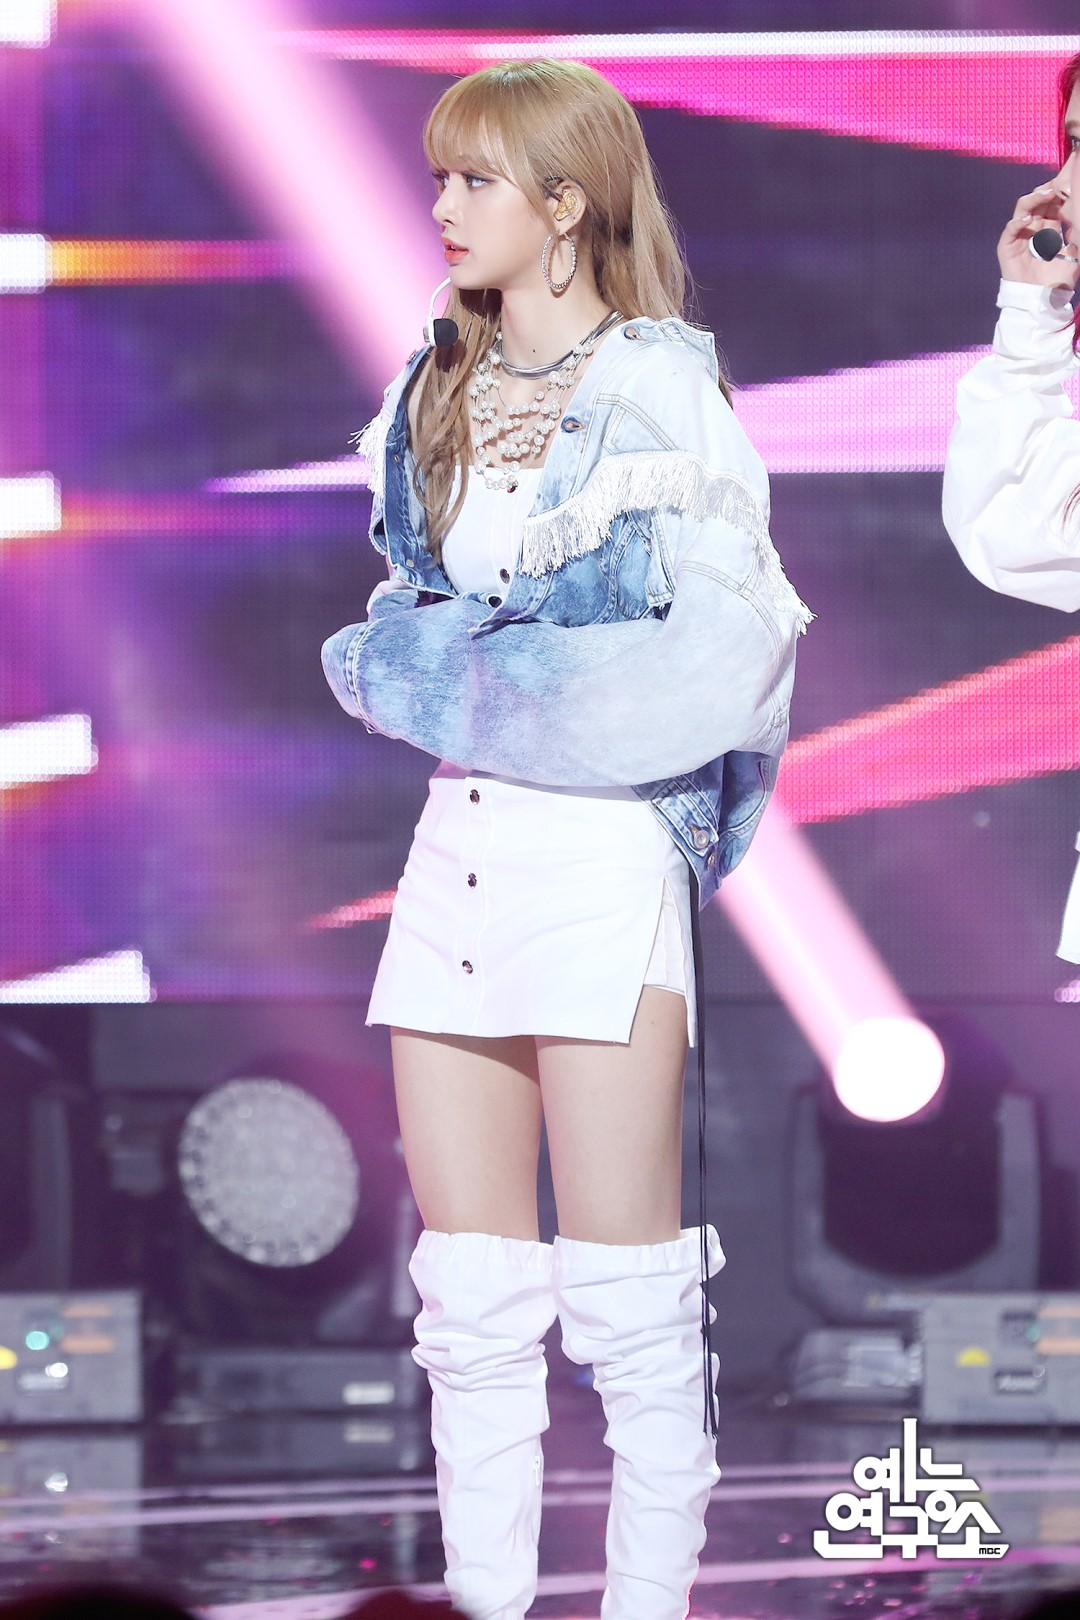 BLACKPINK-Lisa-MBC-Music-Core-white-outfit-30-June-2018-photo-4